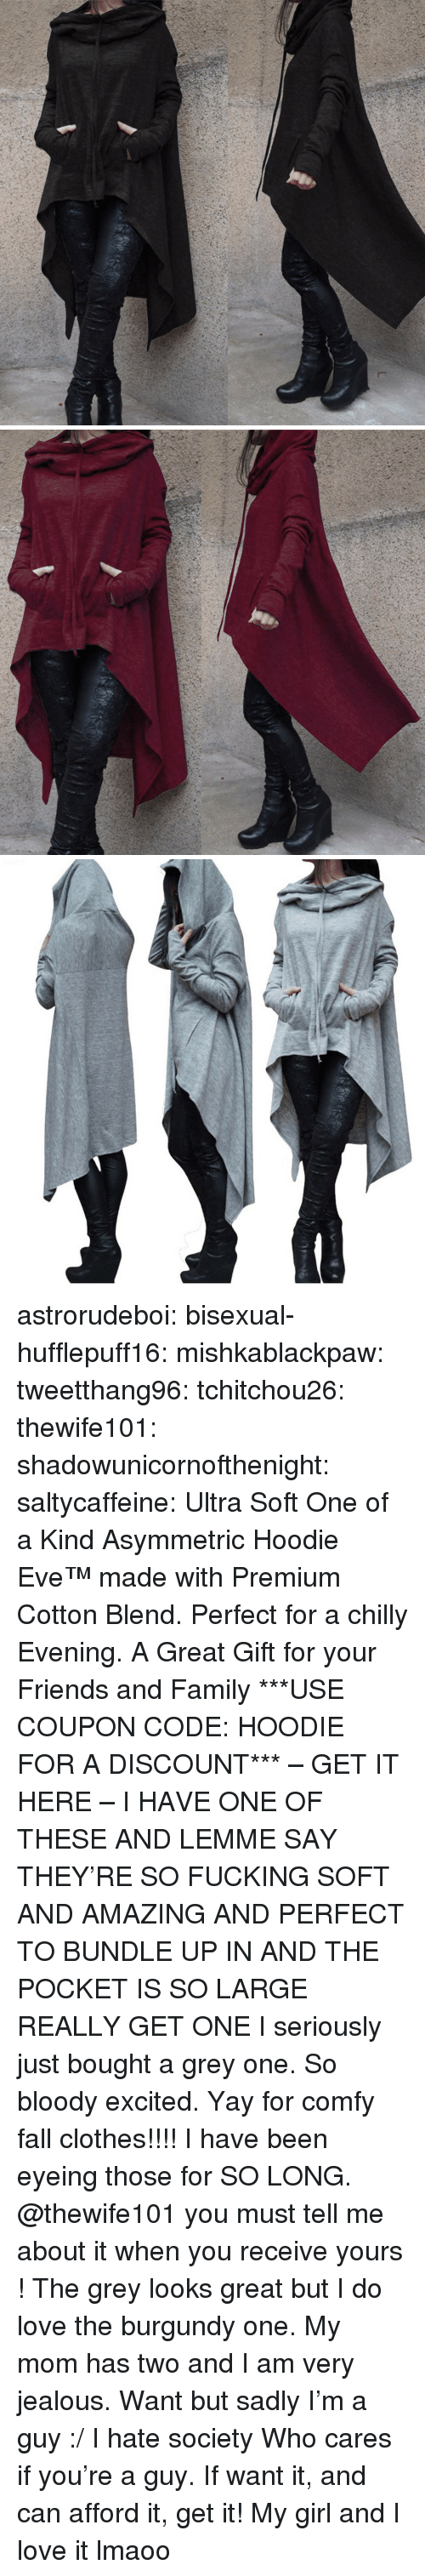 Clothes, Fall, and Family: astrorudeboi: bisexual-hufflepuff16:  mishkablackpaw:   tweetthang96:  tchitchou26:  thewife101:  shadowunicornofthenight:  saltycaffeine:  Ultra Soft One of a Kind Asymmetric Hoodie Eve™made with Premium Cotton Blend. Perfect for a chilly Evening. A Great Gift for your Friends and Family ***USE COUPON CODE: HOODIE FOR A DISCOUNT*** – GET IT HERE –   I HAVE ONE OF THESE AND LEMME SAY THEY'RE SO FUCKING SOFT AND AMAZING AND PERFECT TO BUNDLE UP IN AND THE POCKET IS SO LARGE REALLY GET ONE   I seriously just bought a grey one. So bloody excited. Yay for comfy fall clothes!!!!   I have been eyeing those for SO LONG. @thewife101 you must tell me about it when you receive yours ! The grey looks great but I do love the burgundy one.   My mom has two and I am very jealous.   Want but sadly I'm a guy :/ I hate society   Who cares if you're a guy. If want it, and can afford it, get it!   My girl and I love it lmaoo